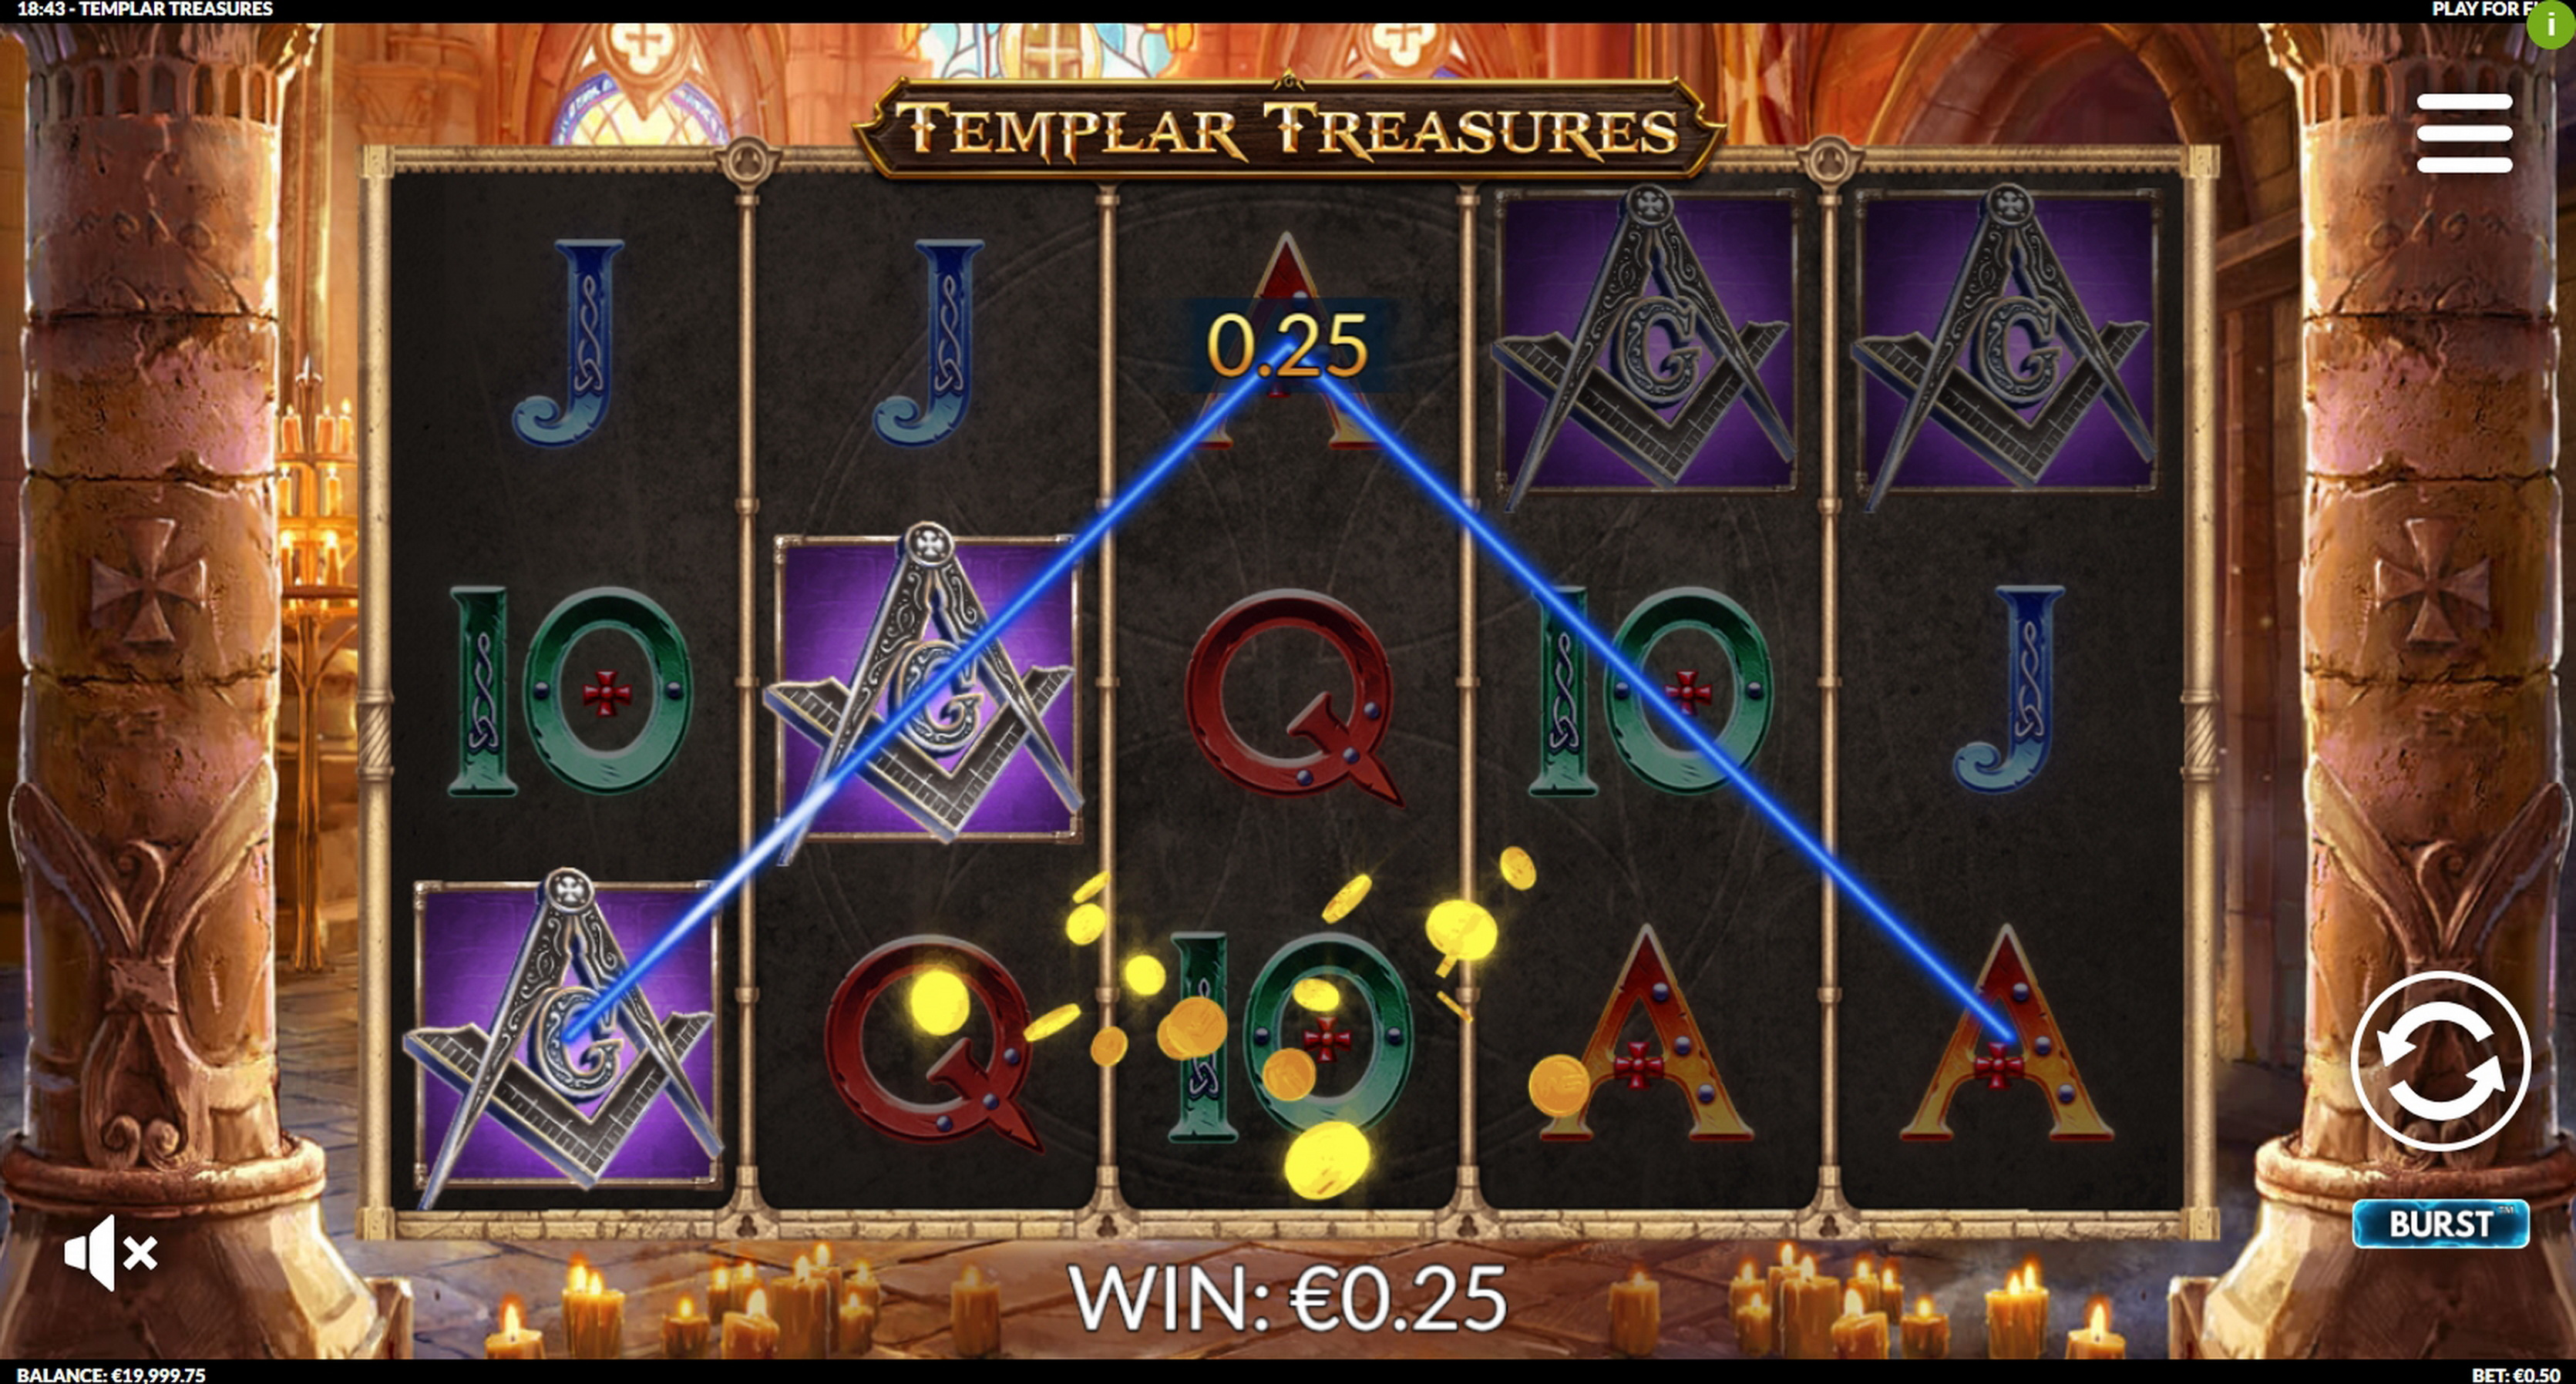 Win Money in Templar Treasures Free Slot Game by Slotmill